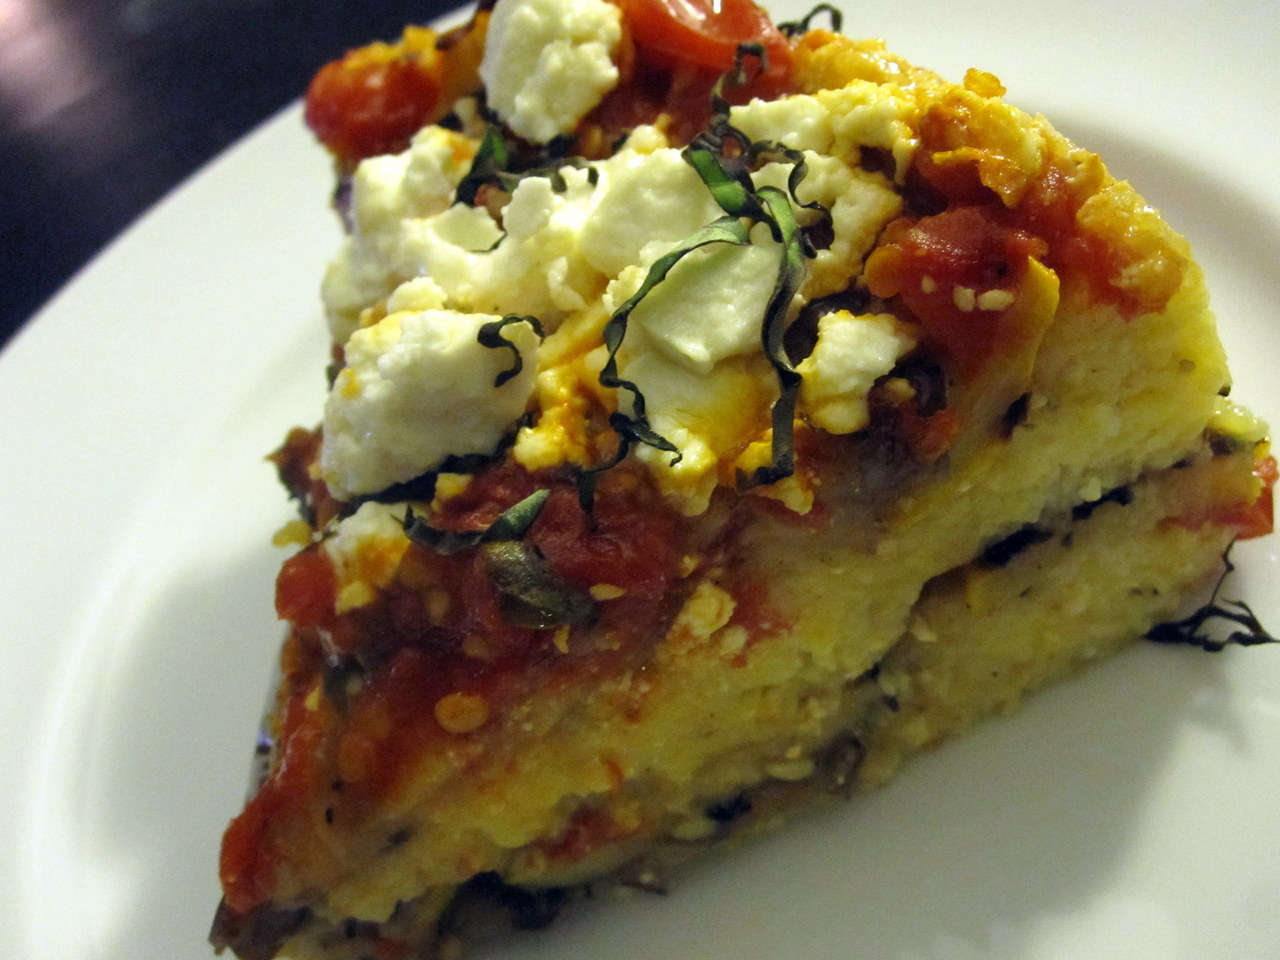 Eggplant Polenta Lasagna:  This healthy spin on traditional lasagna is loaded with veggies and bursting with flavor. Polenta is used in place of noodles and goat cheese in place of ricotta in this layered one dish wonder. This recipe comes to us from Joy Bauer of JoyBauer.com.